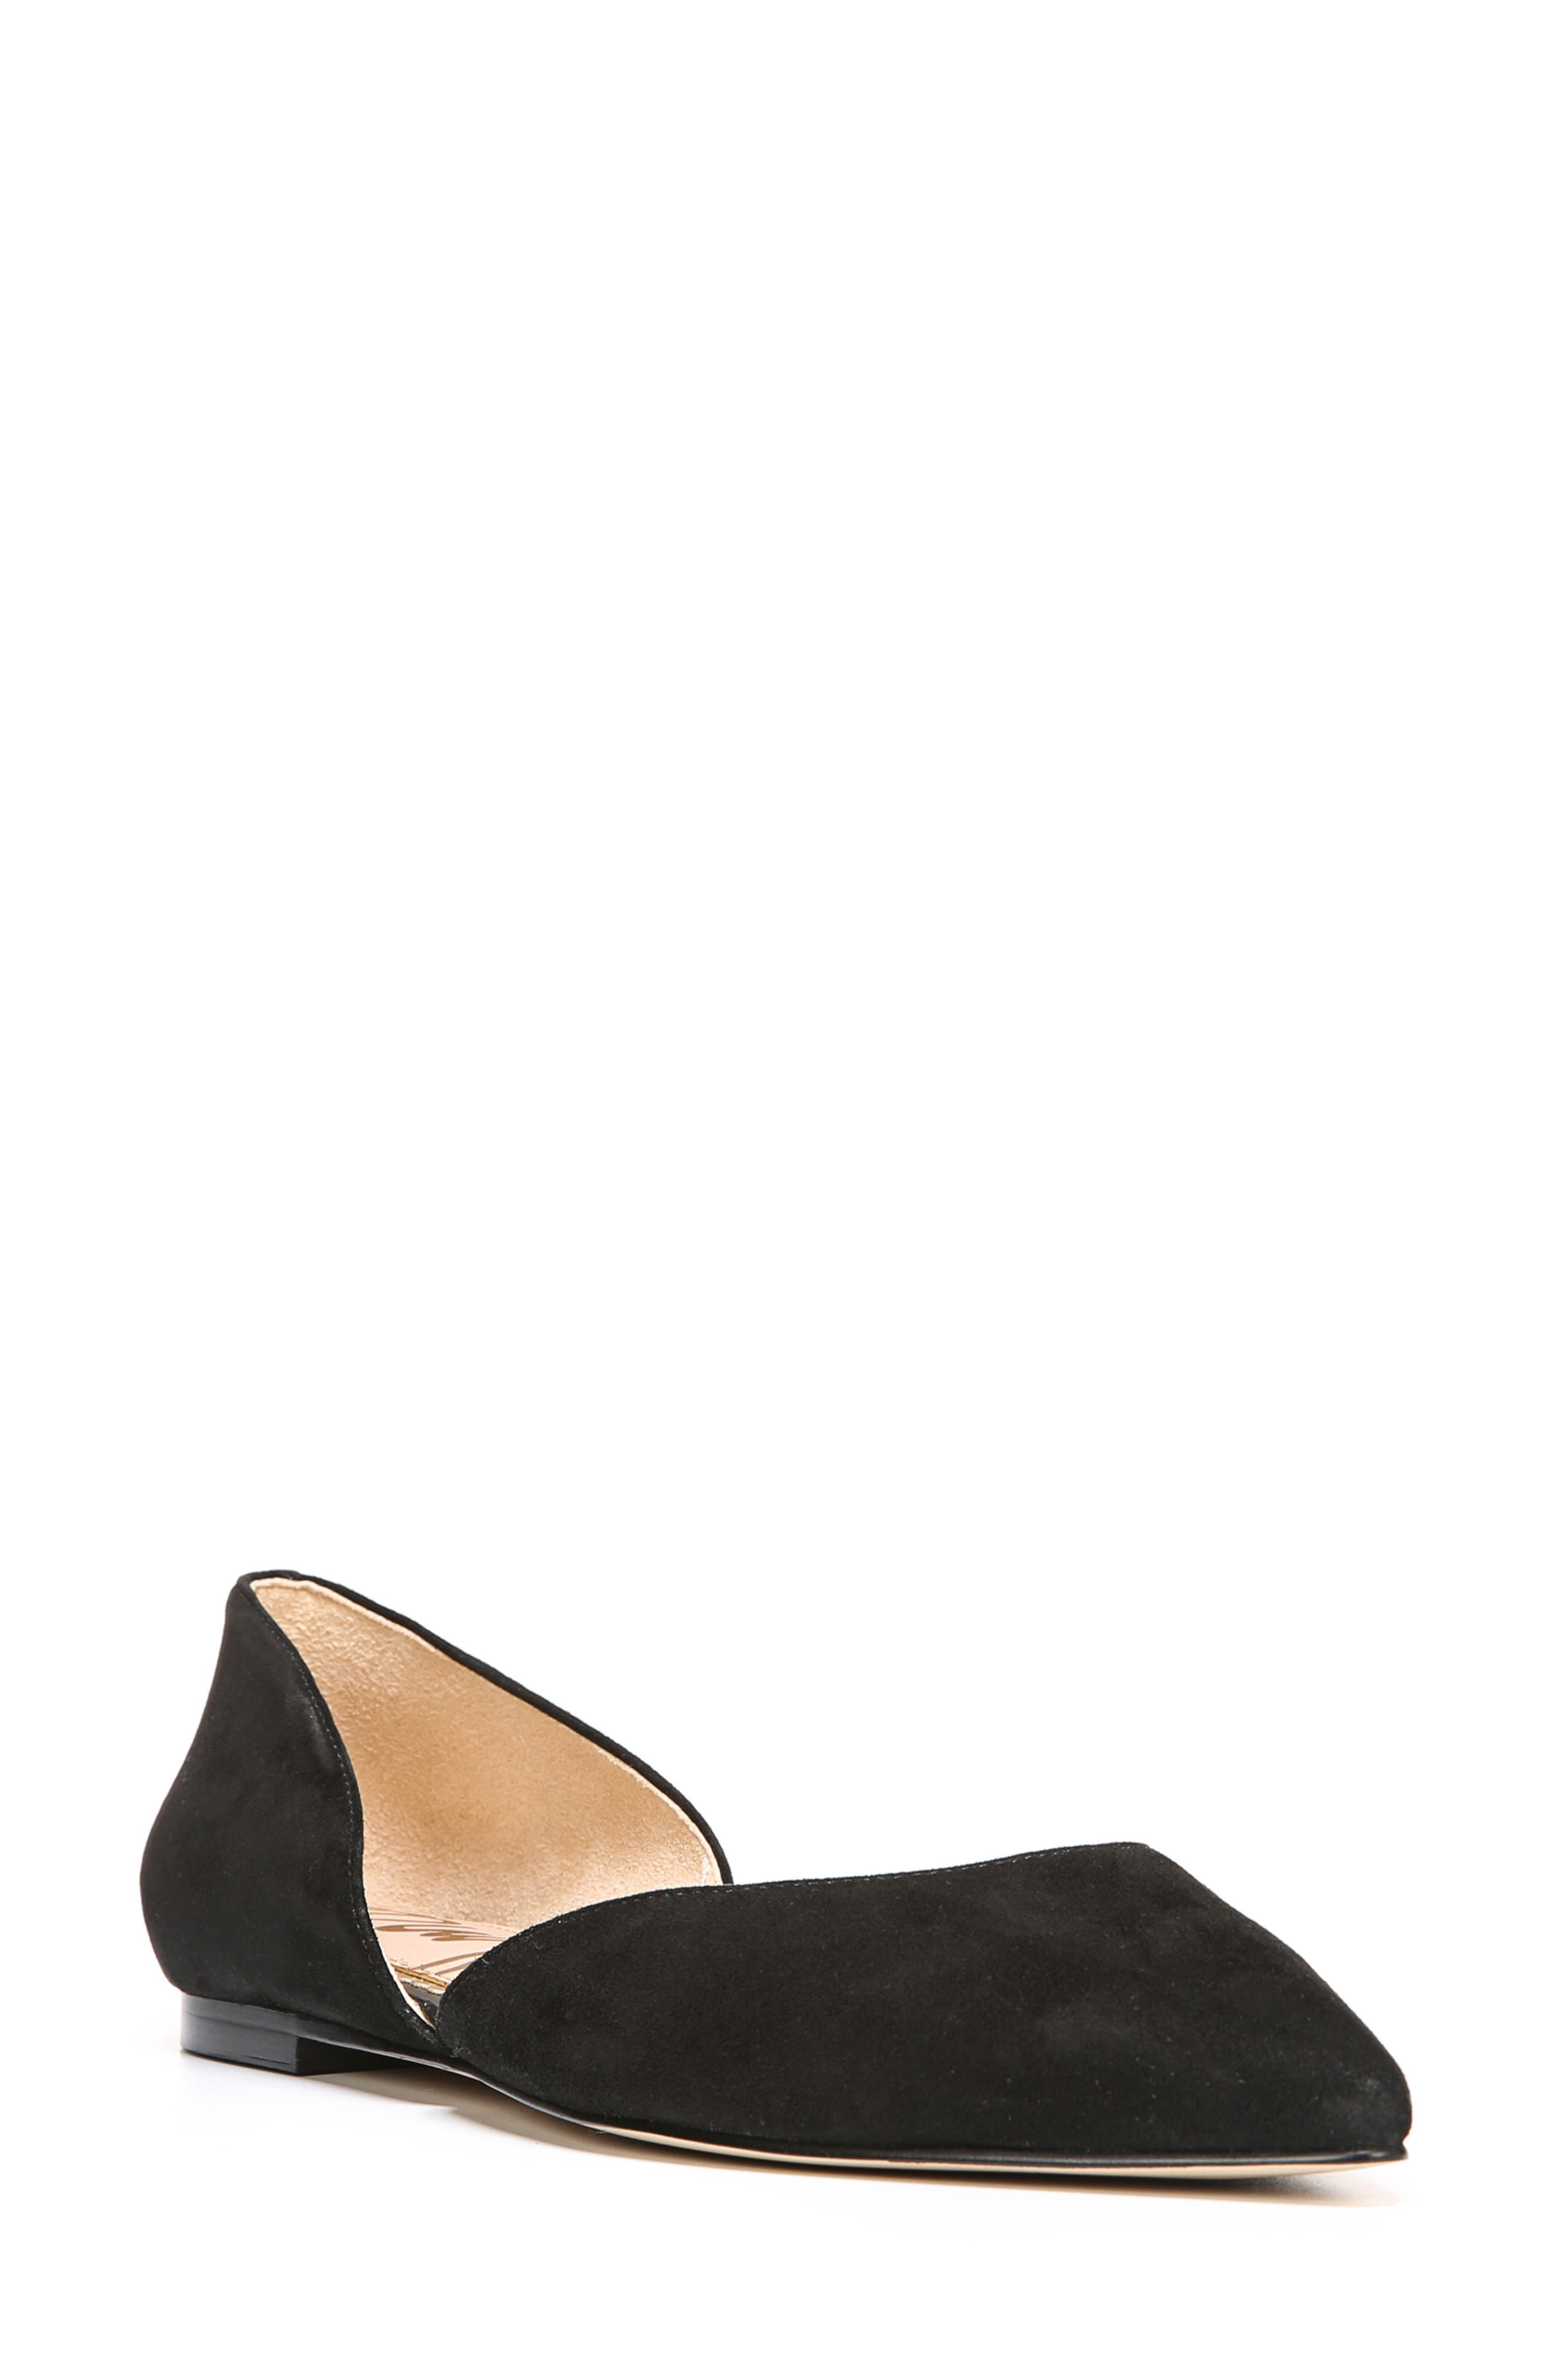 SAM EDELMAN Women'S Rodney Floral-Embroidered D'Orsay Flats in Black Suede